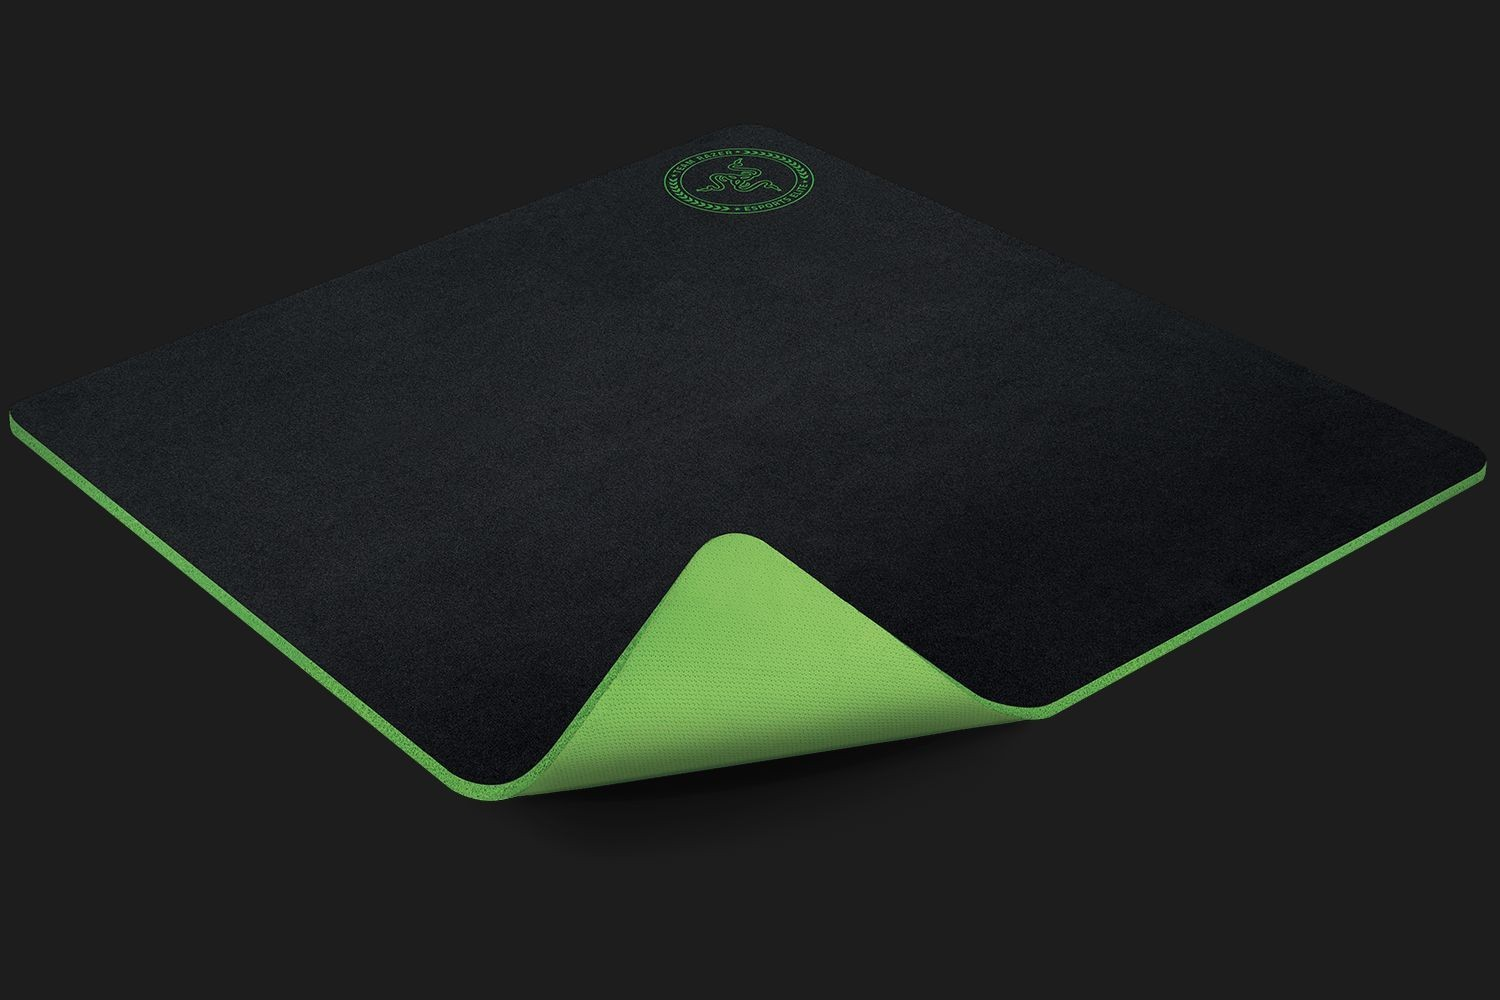 Razer Gigantus surface